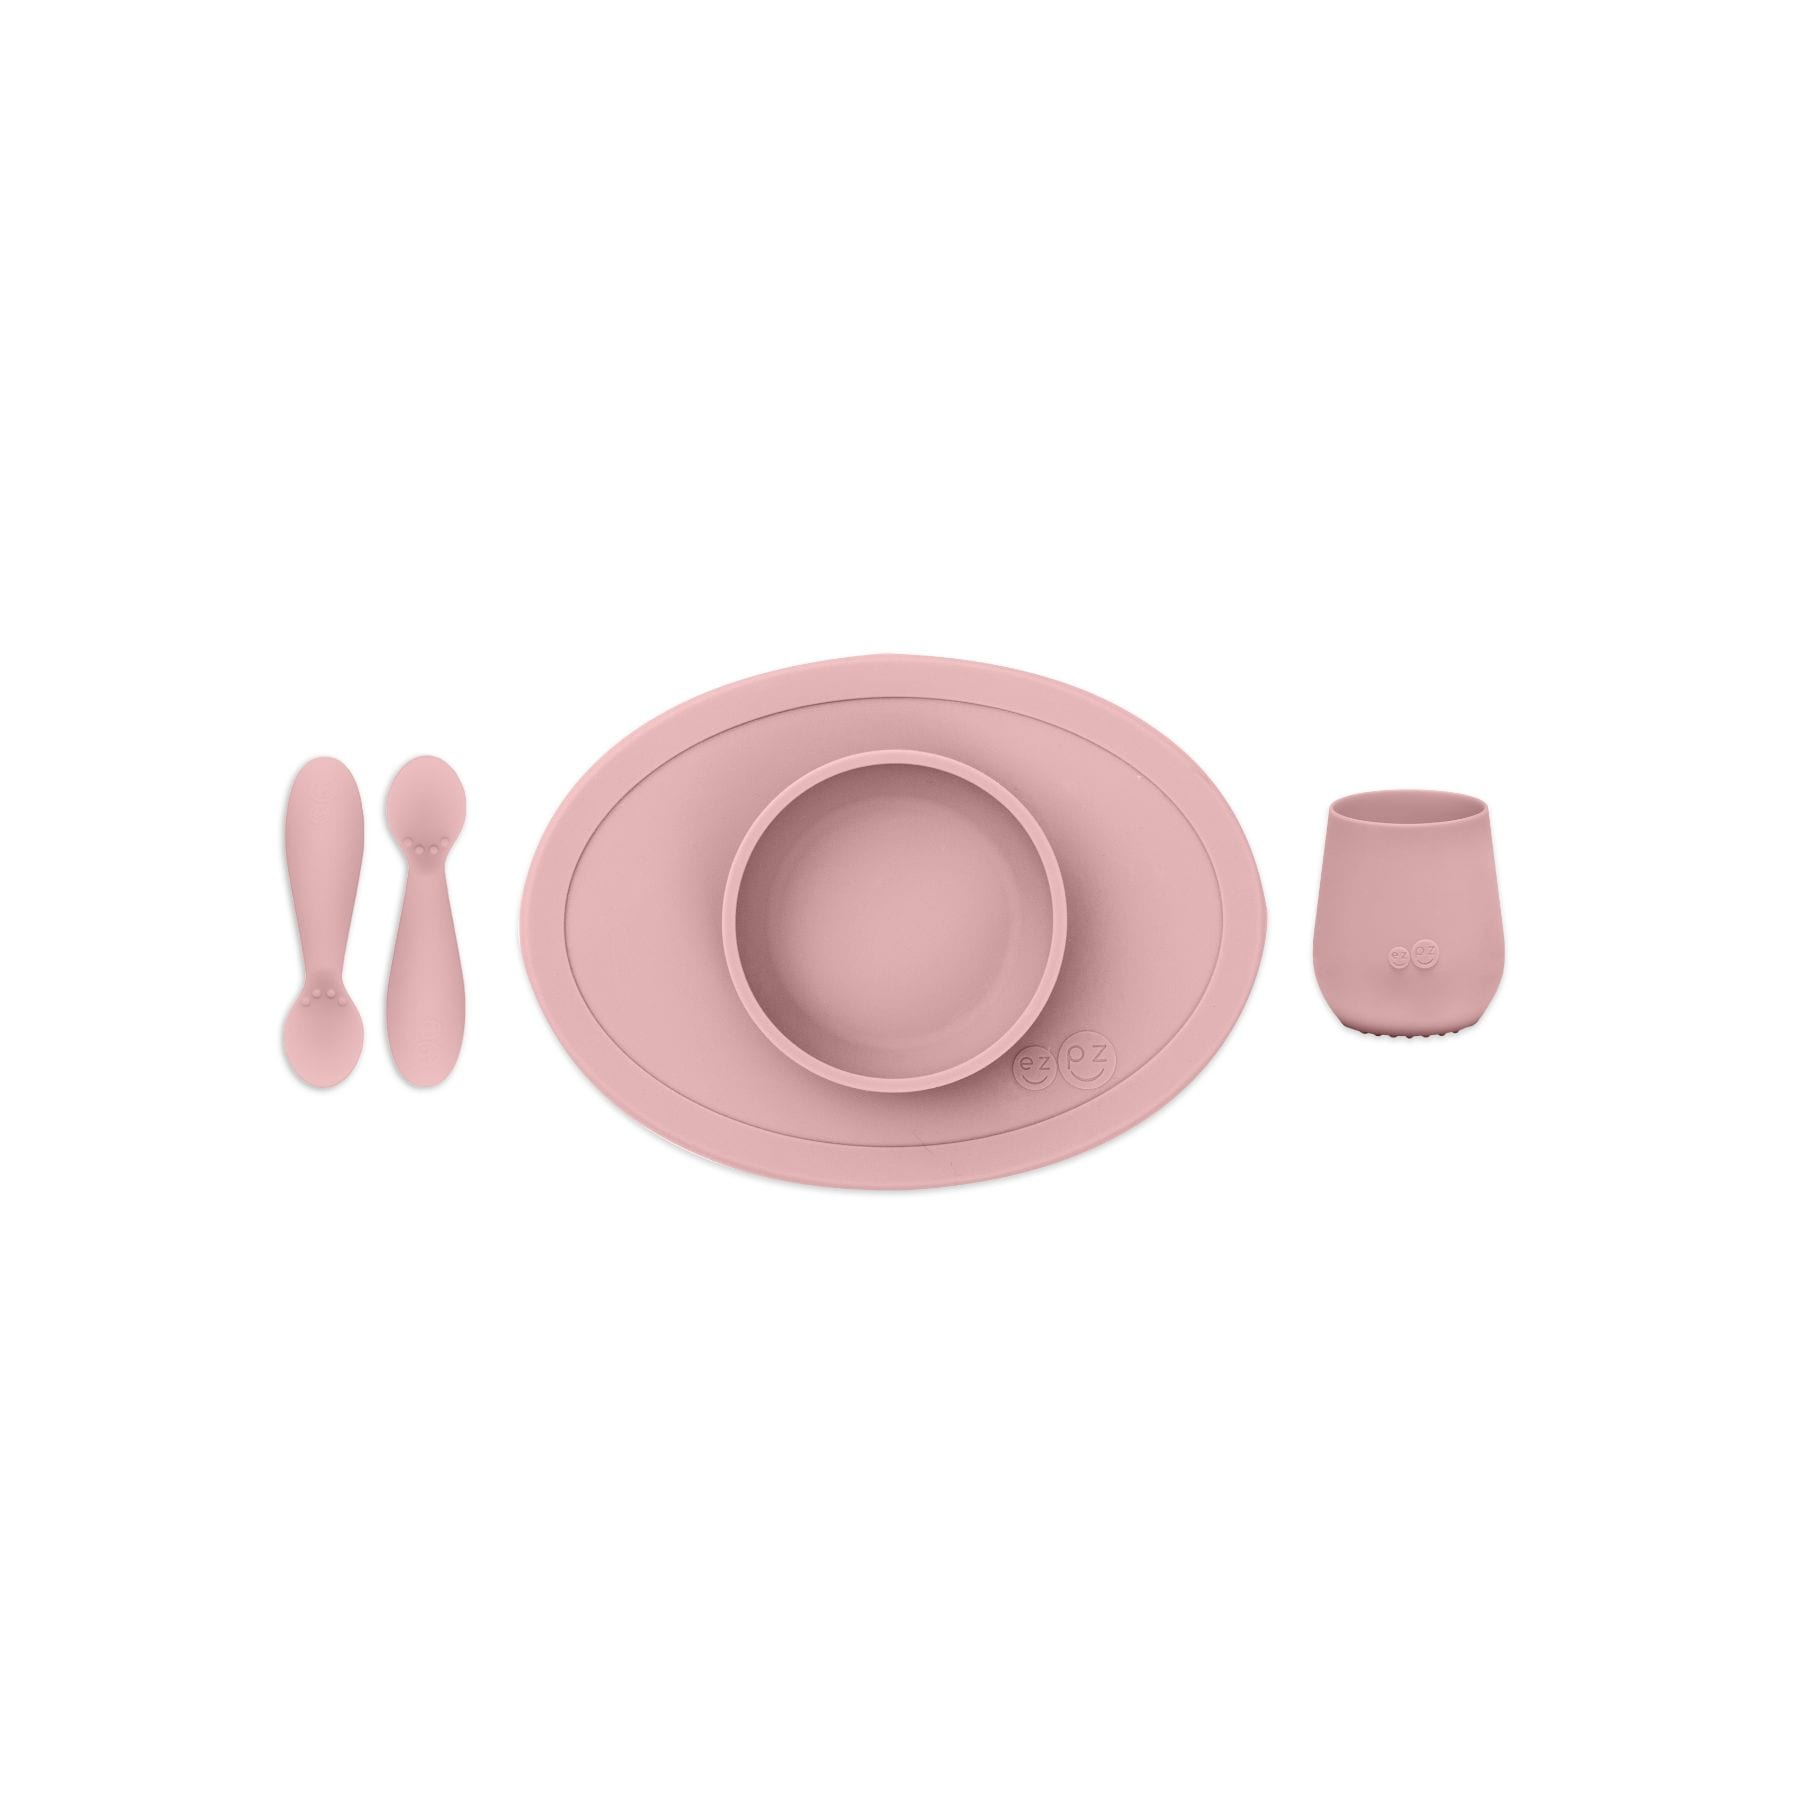 EZPZ Tiny First Food Set - Blush